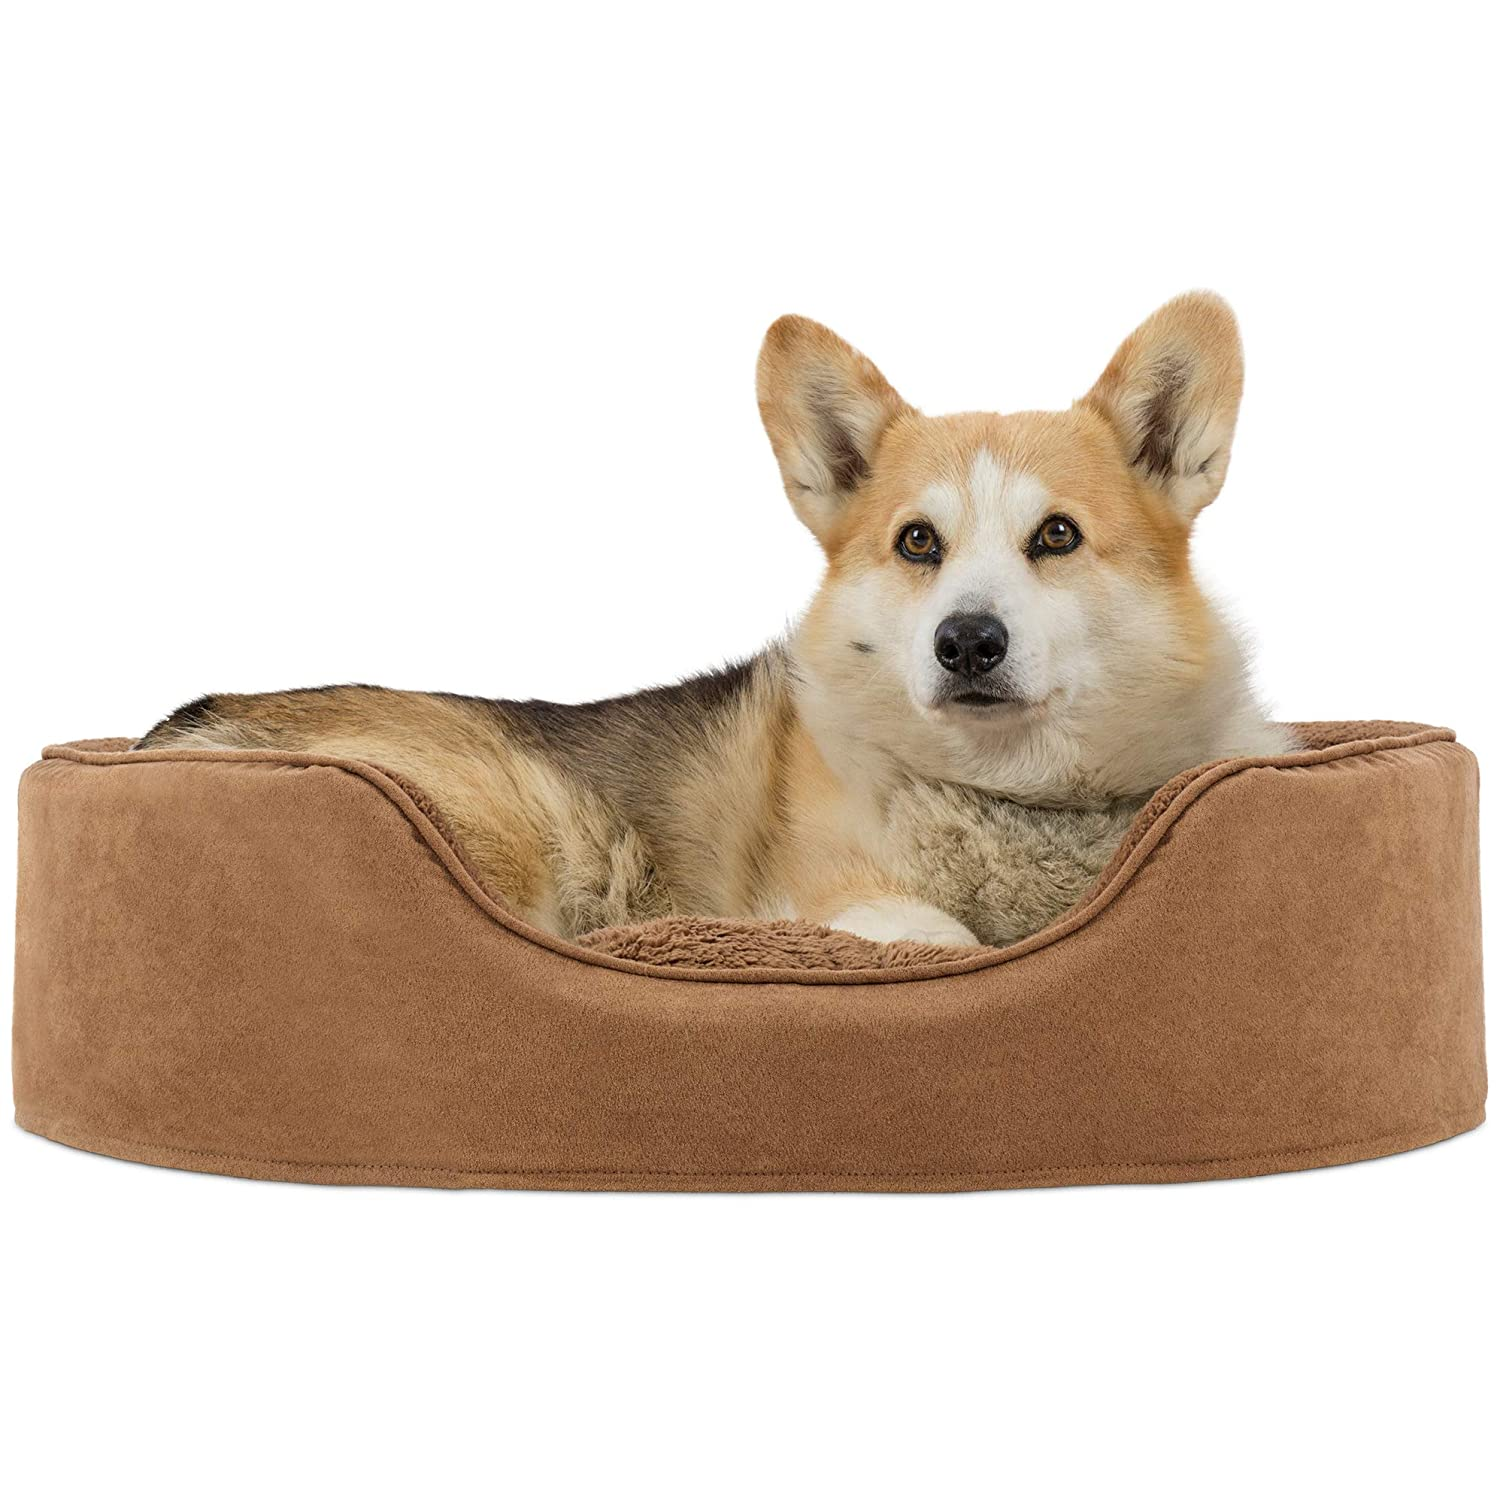 Camel Large Camel Large Furhaven Pet Products Nap Oval Terry Fleece and Suede Bed for Dog or Cat, Large, Camel